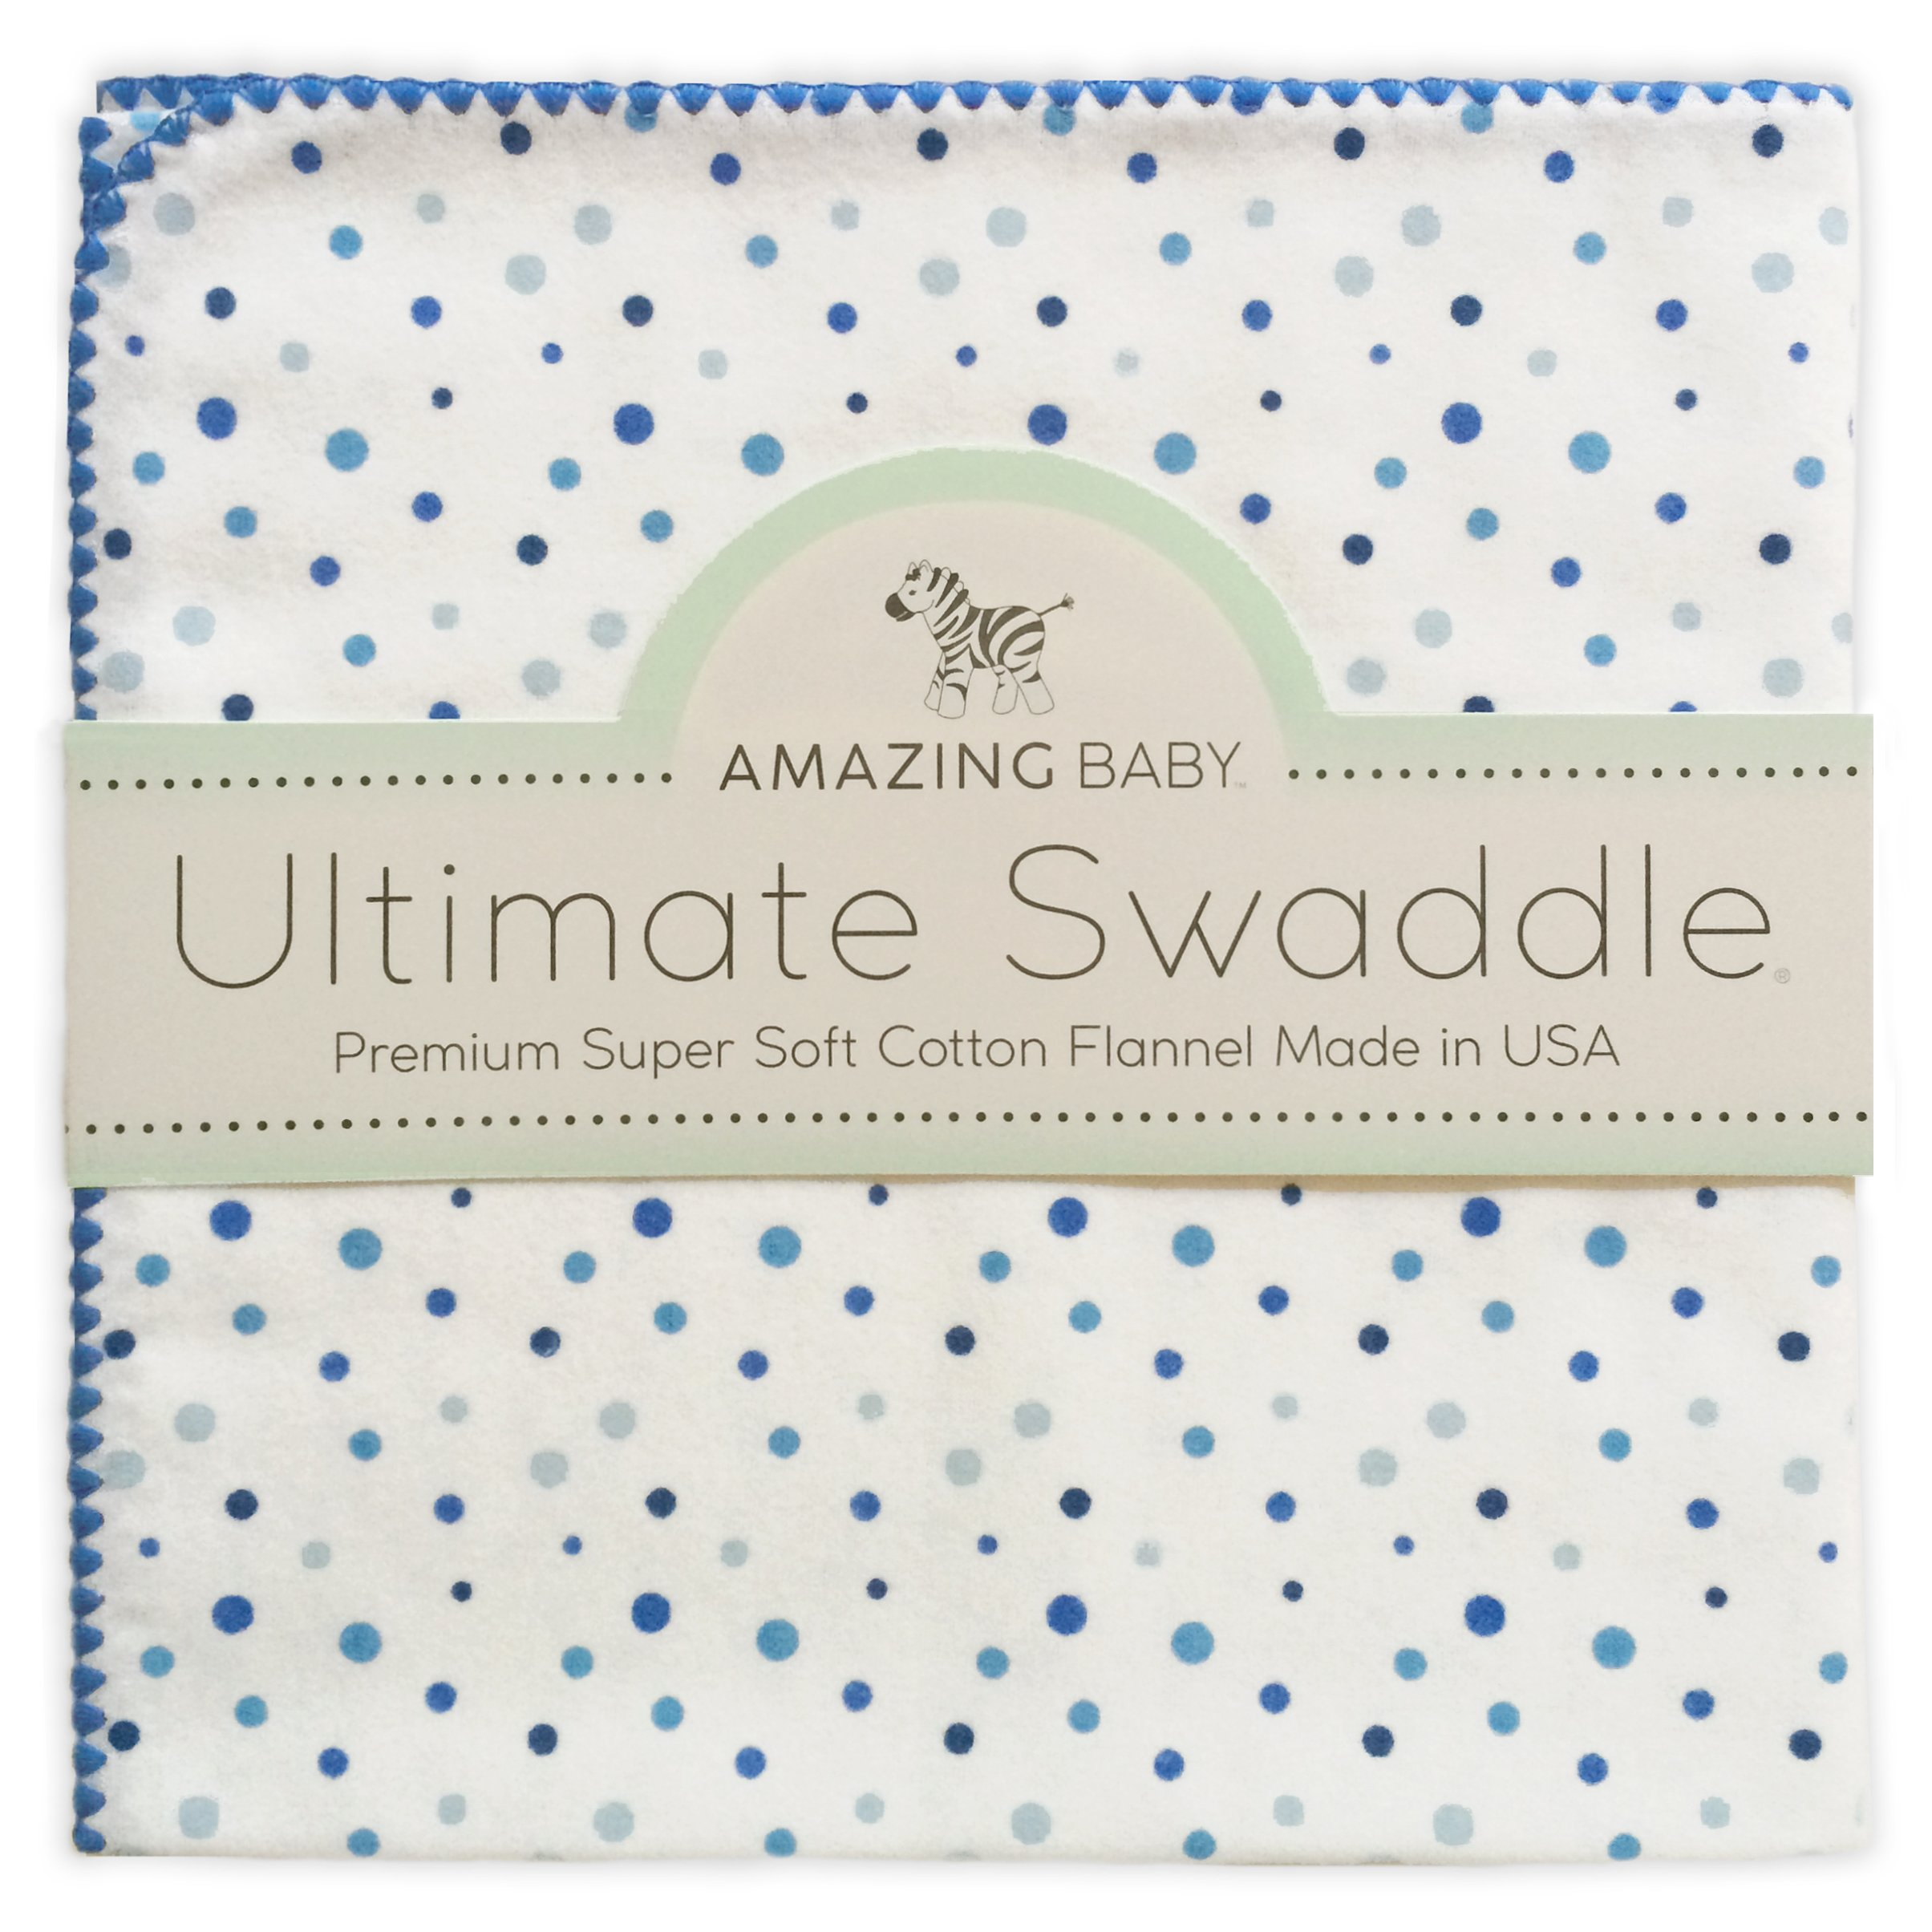 Amazing Baby Ultimate Swaddle, X-Large Receiving Blanket, Made in USA, Premium Cotton Flannel, Playful Dots, Multi Blue (Mom's Choice Award Winner)